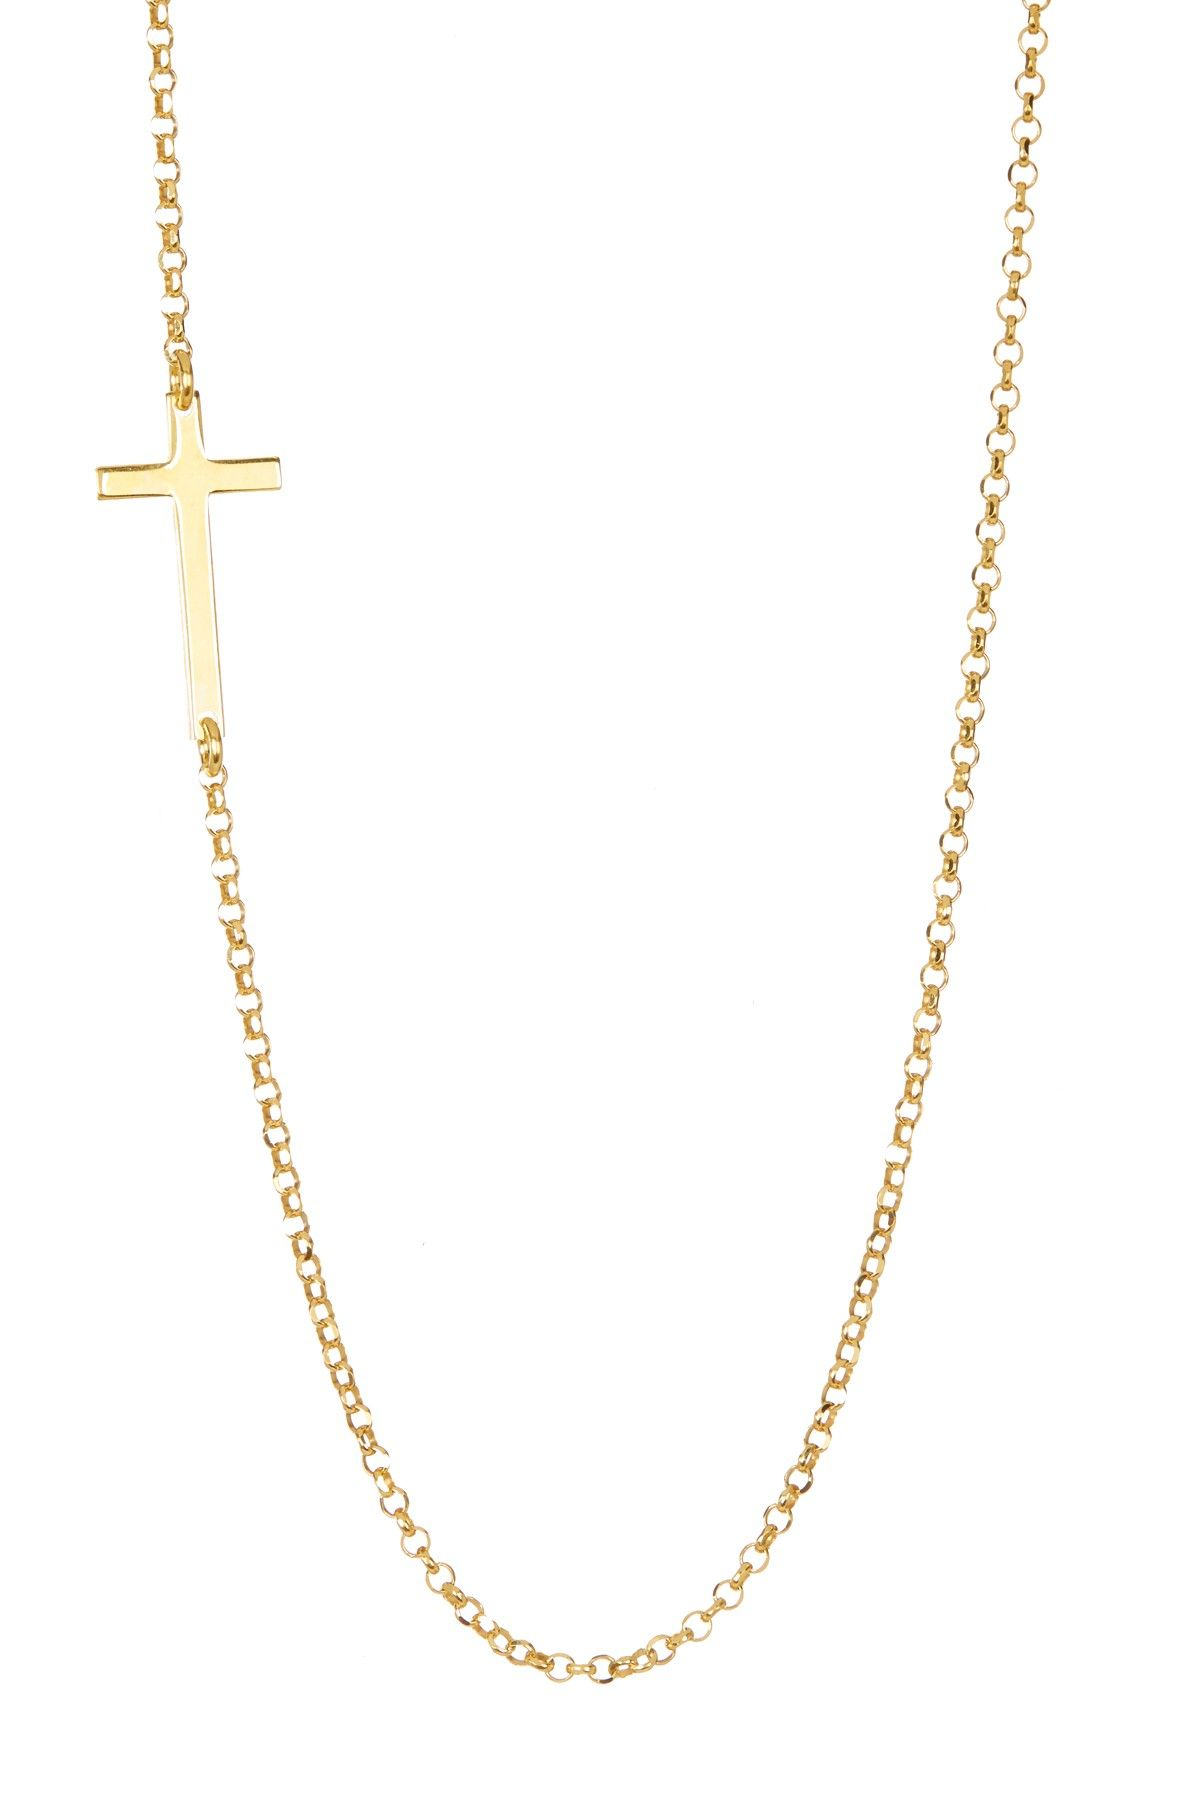 Yellow gold plated sterling silver sideways cross pendant necklace